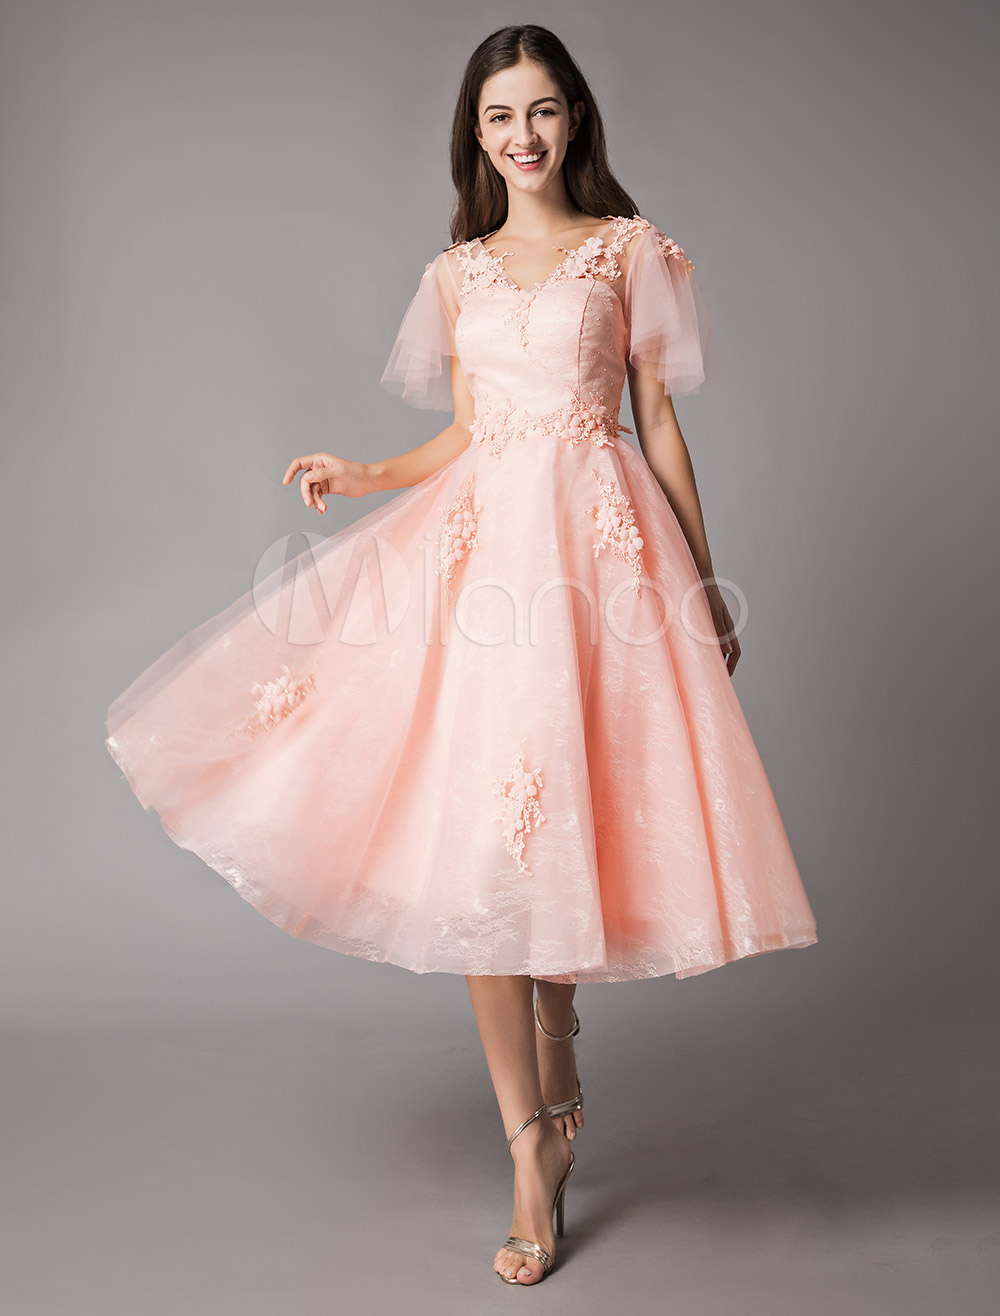 Buy Soft Pink Prom Dresses Lace Applique V Neck Short Sleeve Graduation Homecoming Party Dress for $101.19 in Milanoo store